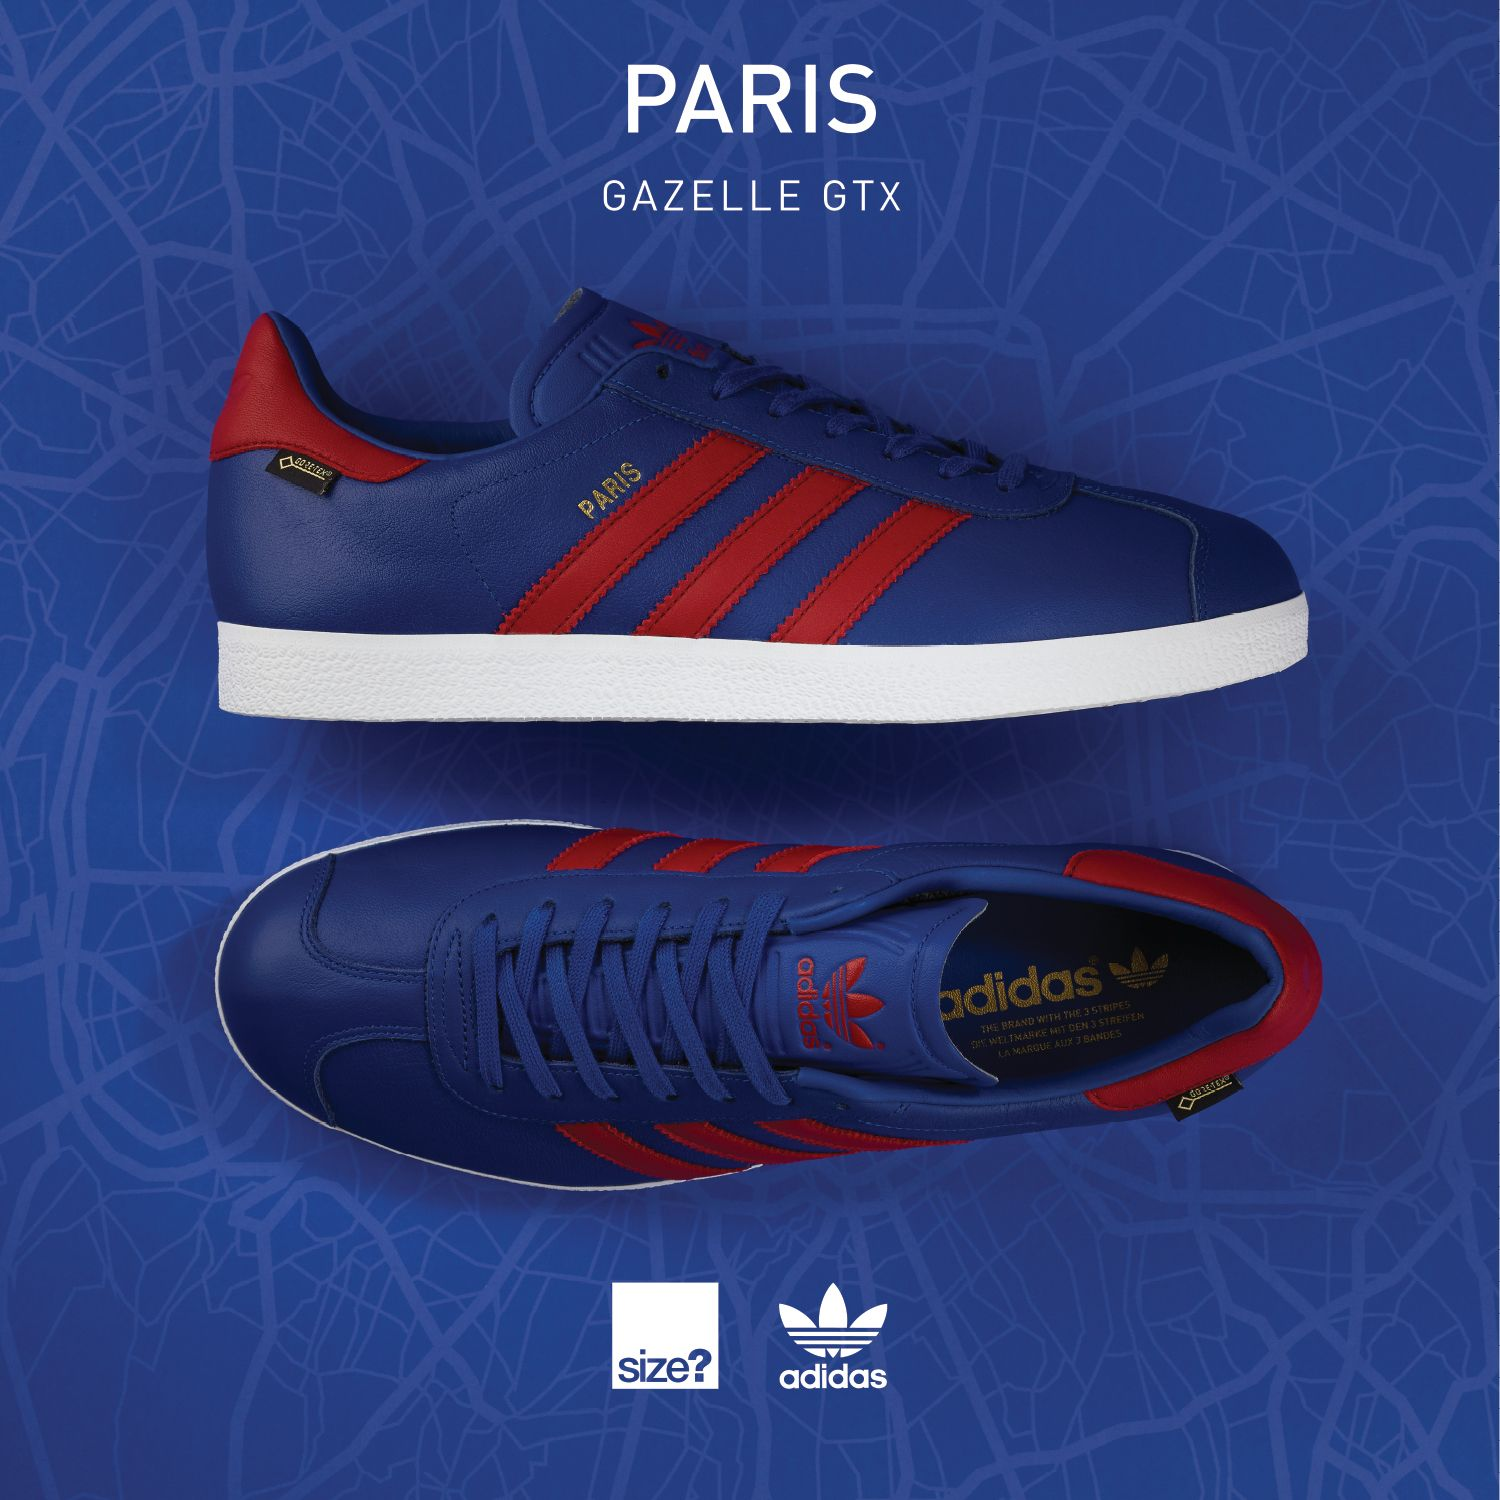 Details about MEN'S SHOES SNEAKERS ADIDAS ORIGINALS